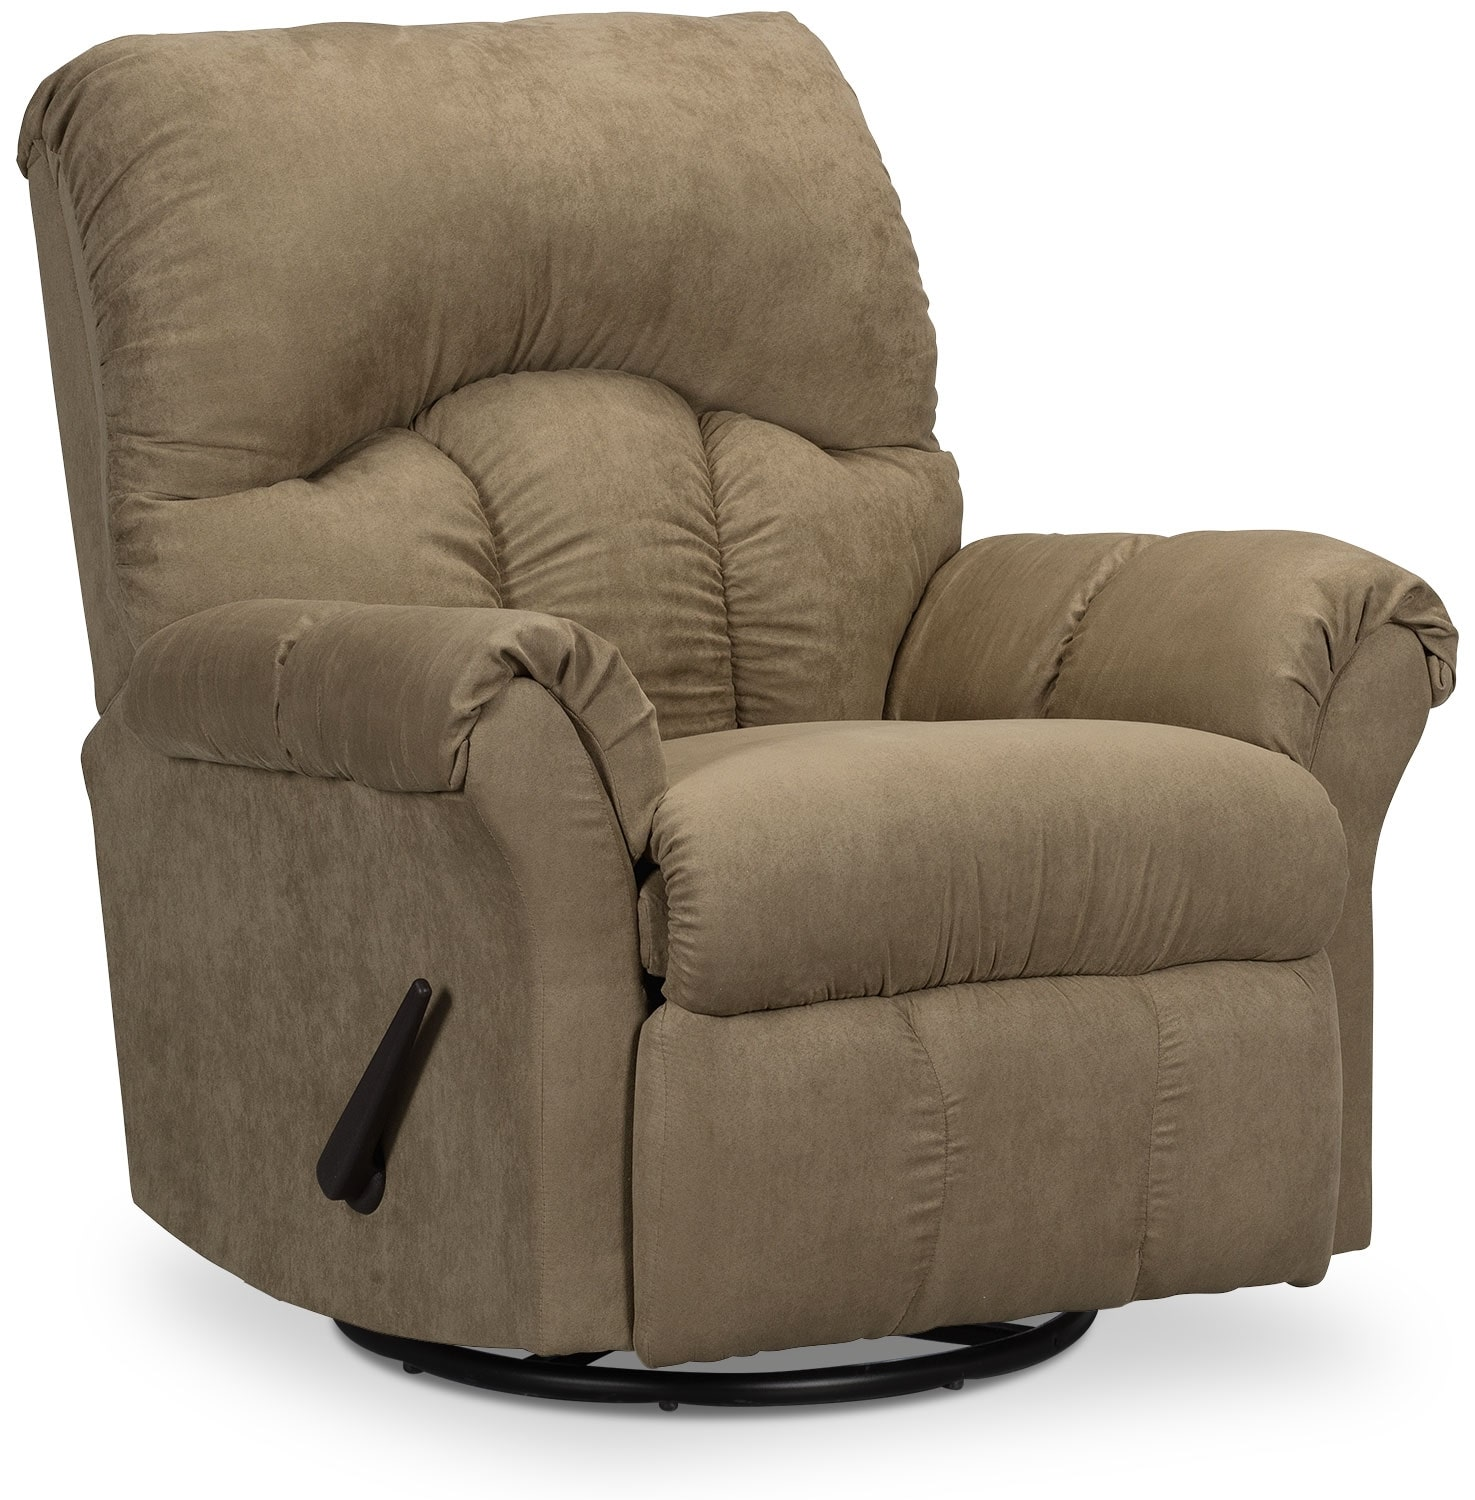 Designed2B Recliner 6734 Microsuede Swivel Glider Chair - Mocha